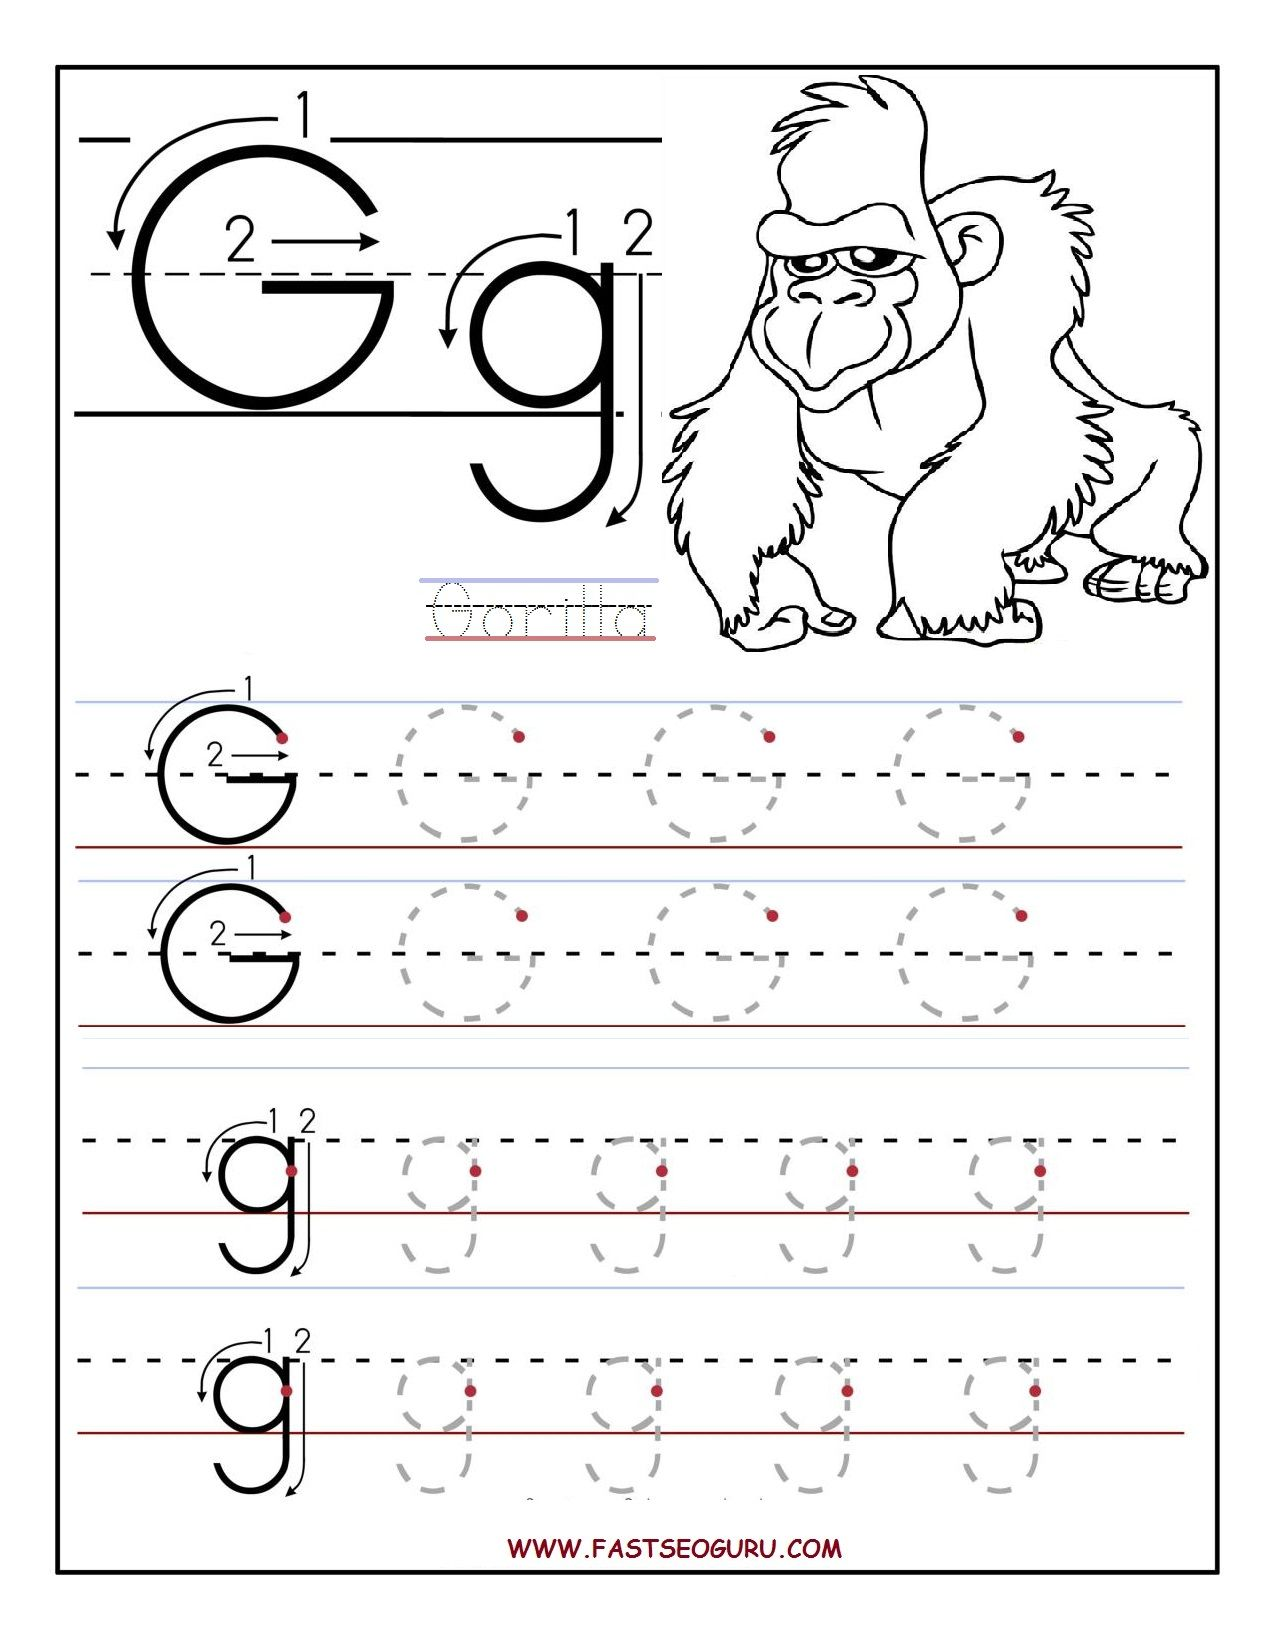 Worksheets For Preschoolers Printable Letter G Tracing Worksheets